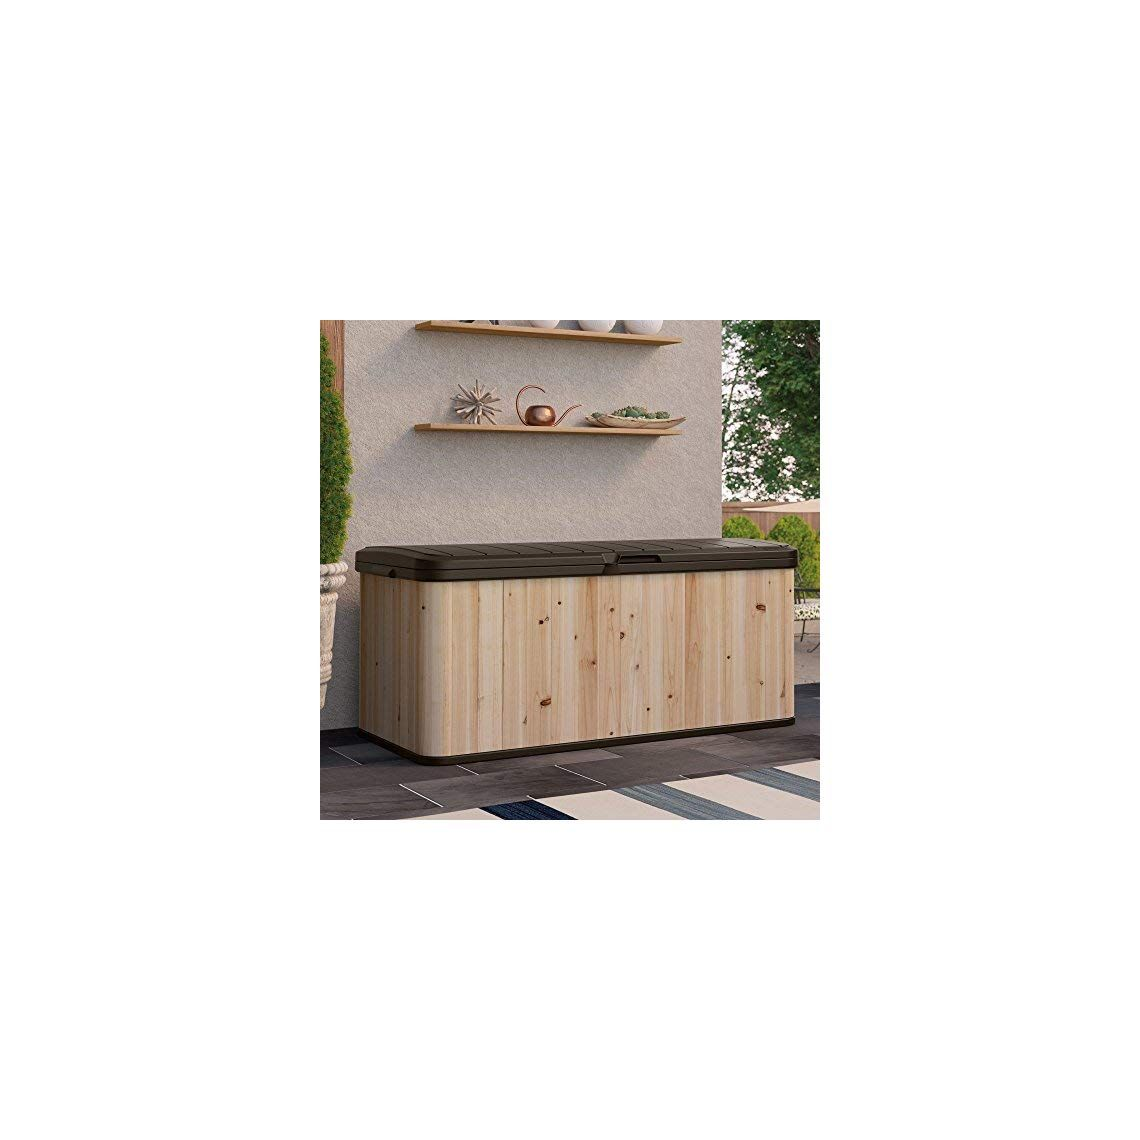 Suncast Extra Large Cedar And Plastic 120 Gallon Deck Box Wrdb12000 Dimensions 54 5l X 27 5w X 24 25h In Built From Cedar And Plastic Natural Wood Color